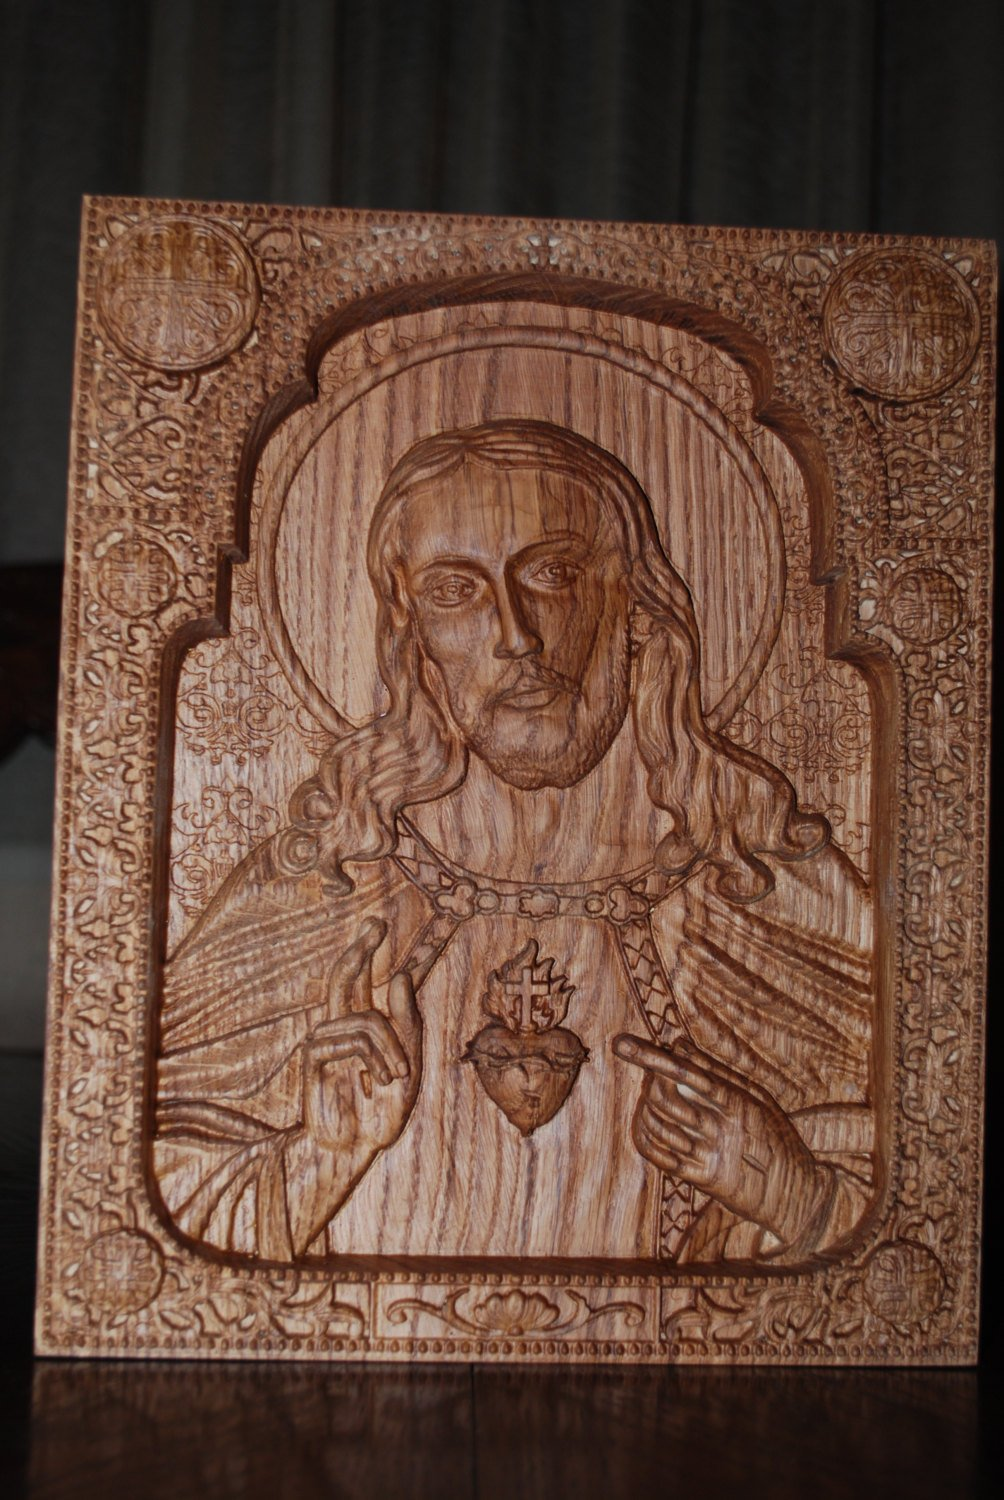 Sacred Heart of Jesus Catholic Icon Religious wedding anniversary gift for him gift Wood Carved religious wall plaque FREE ENGRAVING FREE SHIPPING